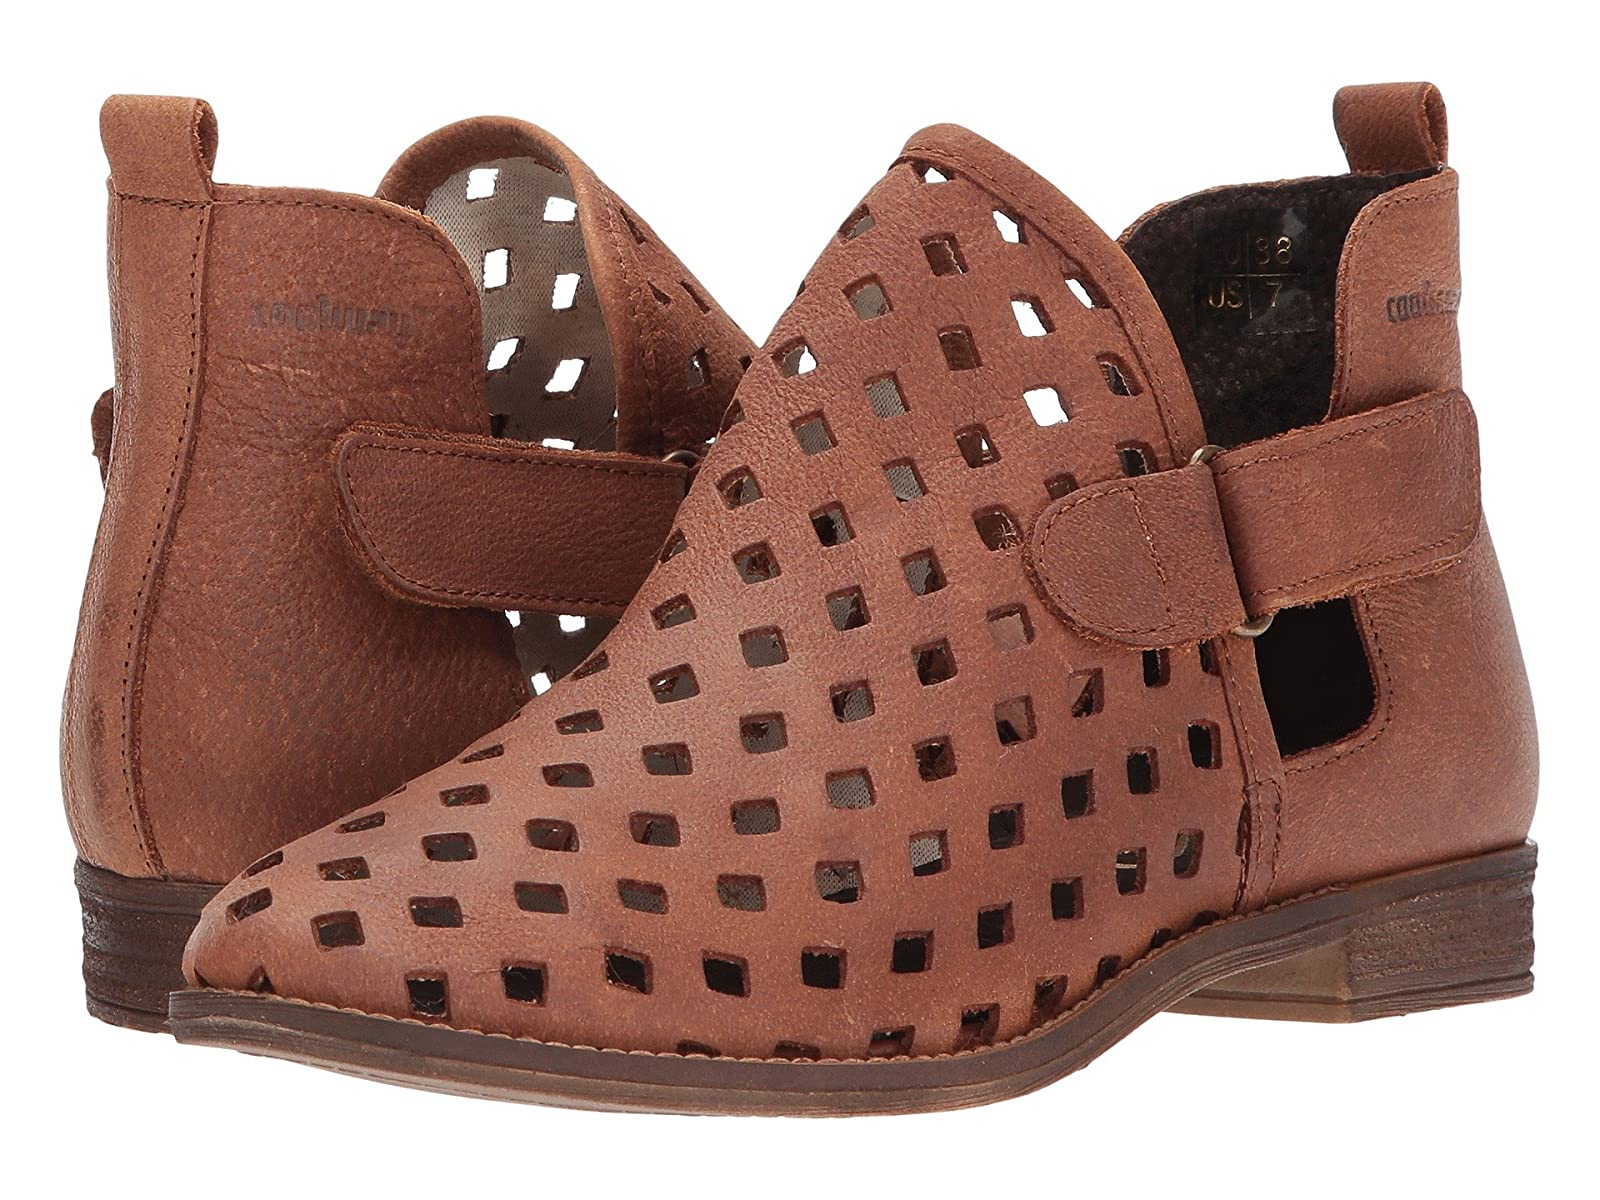 Coolway CailanCheap and distinctive eye-catching shoes